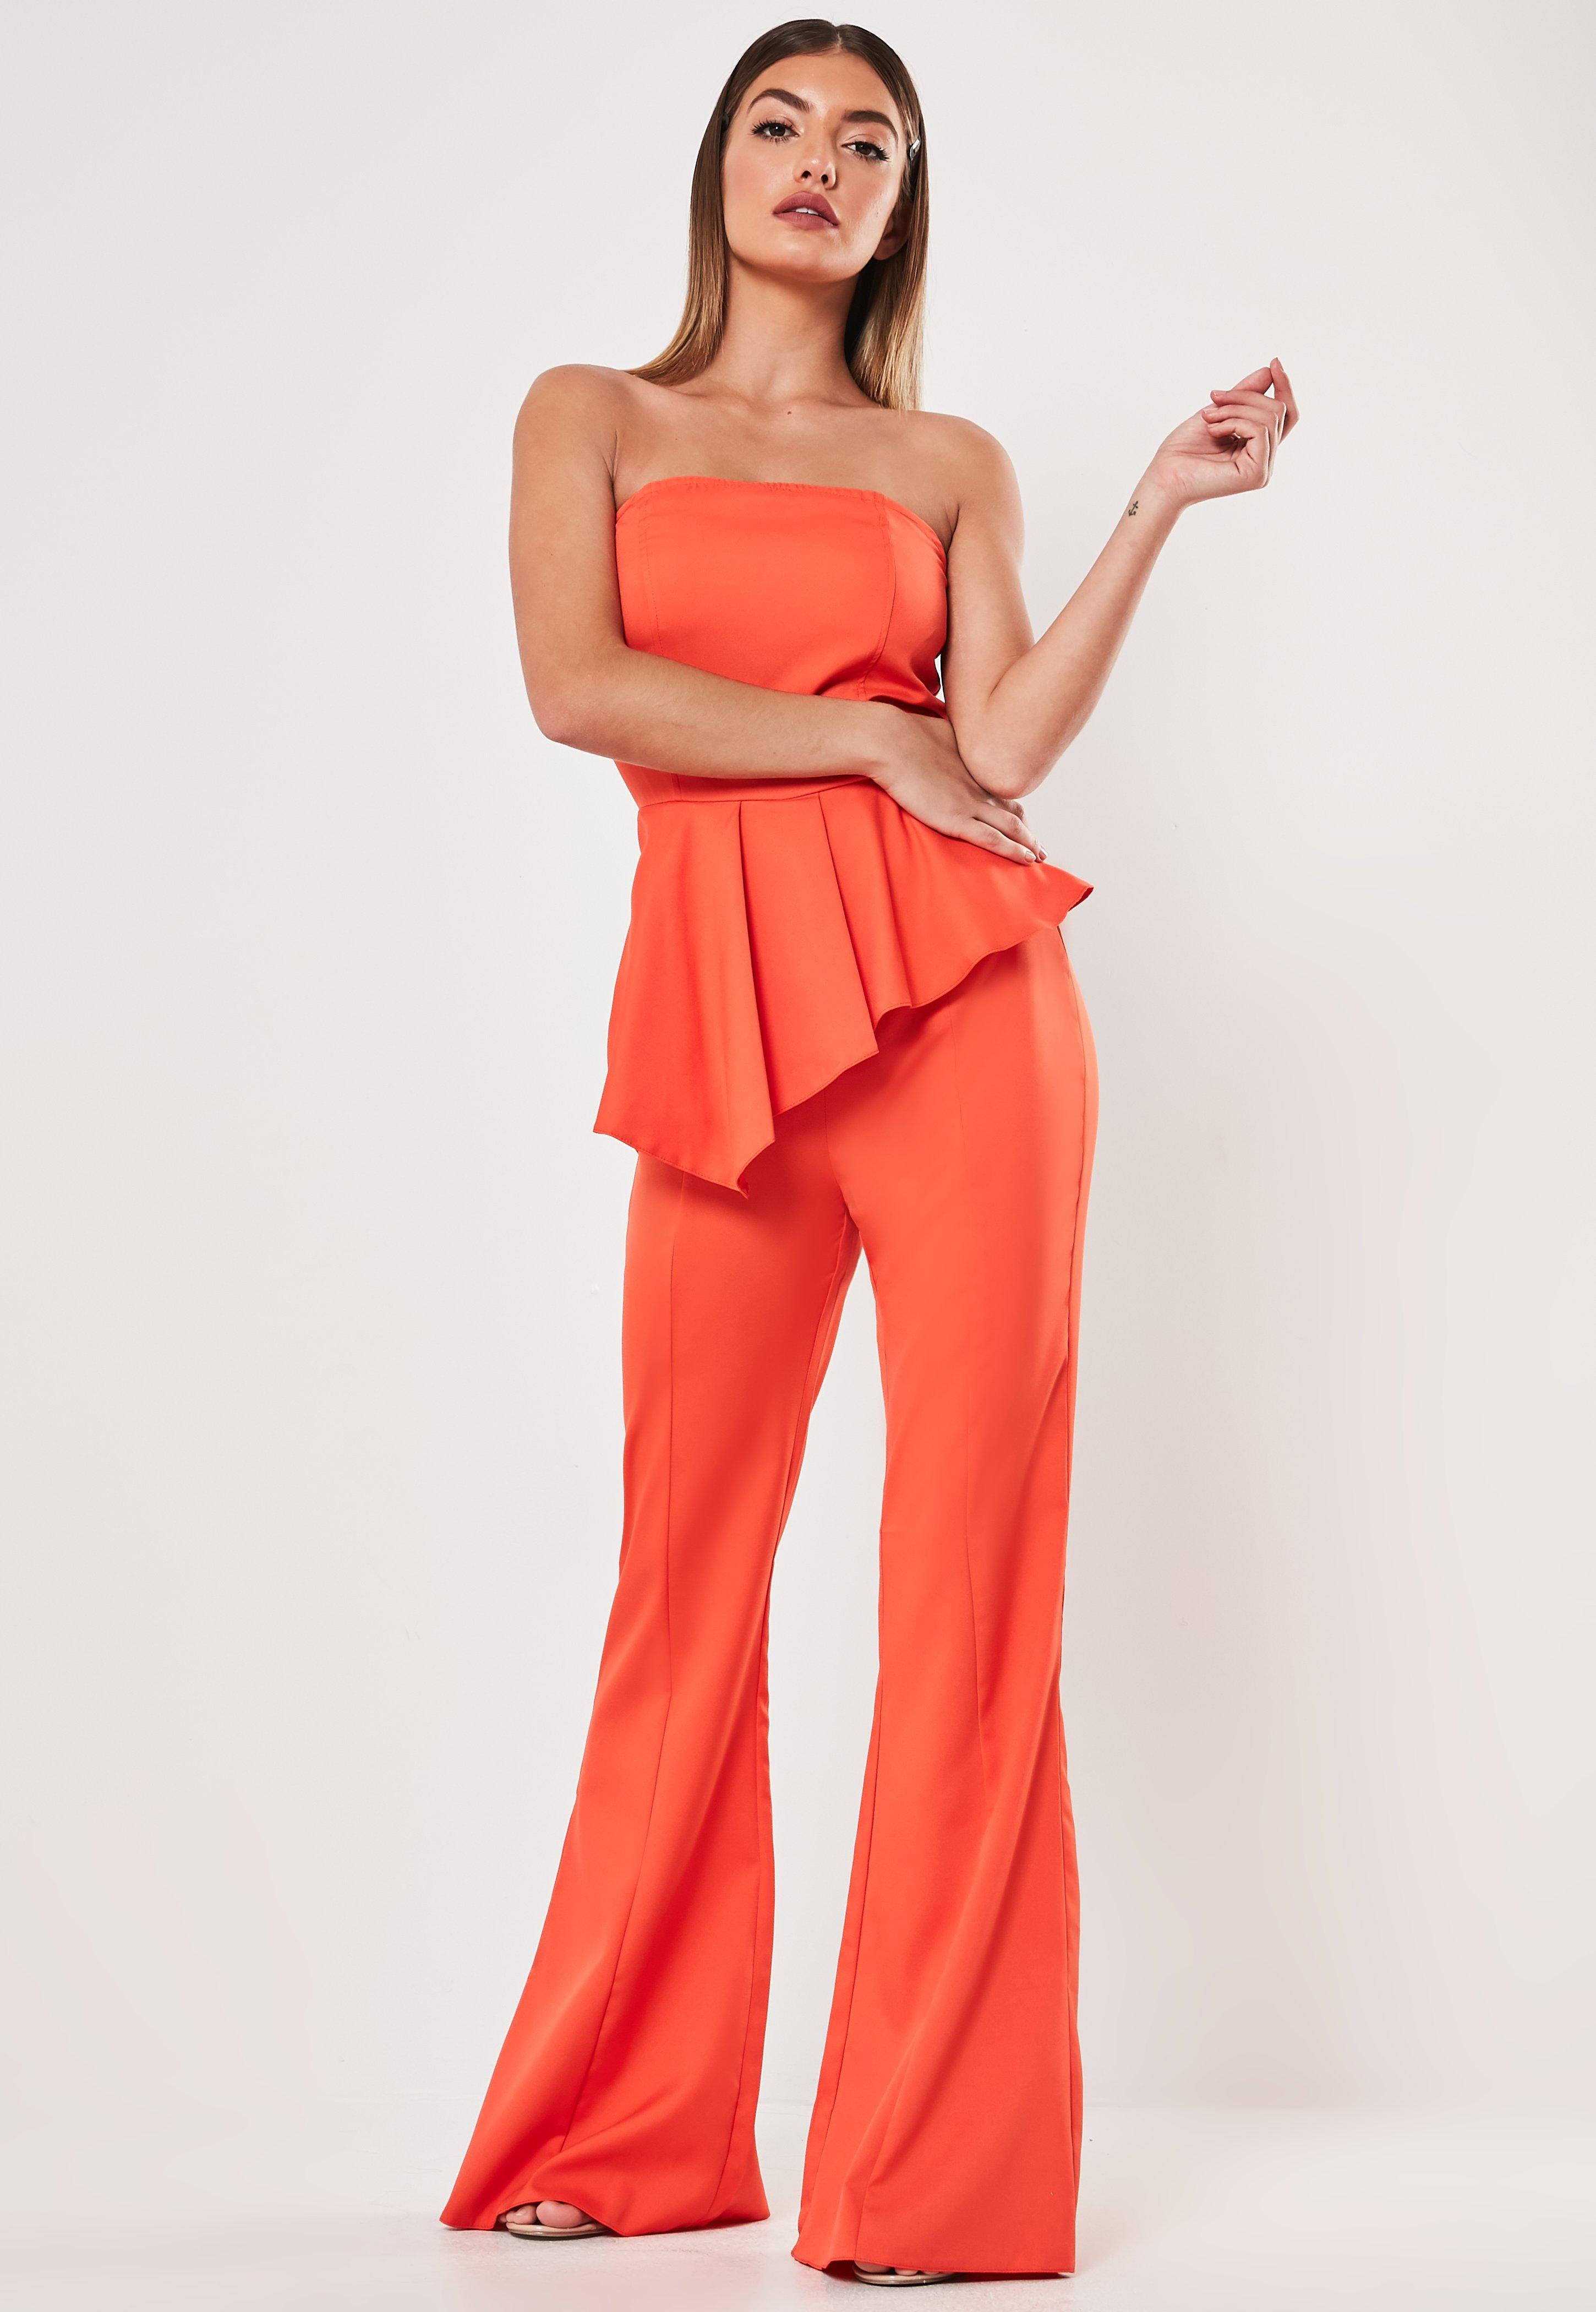 Blush Nude Bardot Frill Flared Bandeau Cropped Wide Leg jumpsuit High Branded